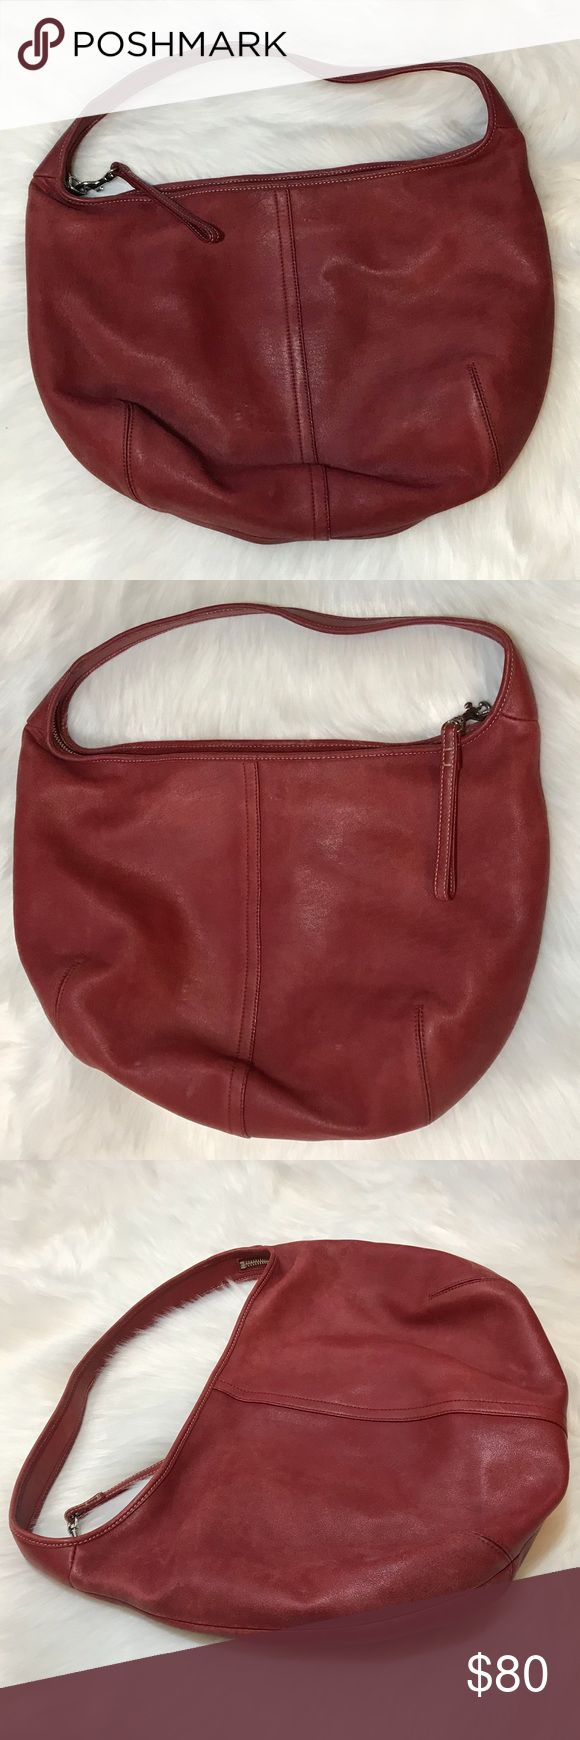 """Coach Leather Hobo Bag Deep red leather Coach hobo bag with black monogram logo lining.  Leather does have some marks, but it has aged beautifully. It is soft and plush and has no tears or abrasions. This bag is lightweight and has an easy feel to it, very boho feel. 16"""" wide and 10"""" high with a 5"""" strap drop. Practical and the quality is very nice! Coach Bags Hobos"""